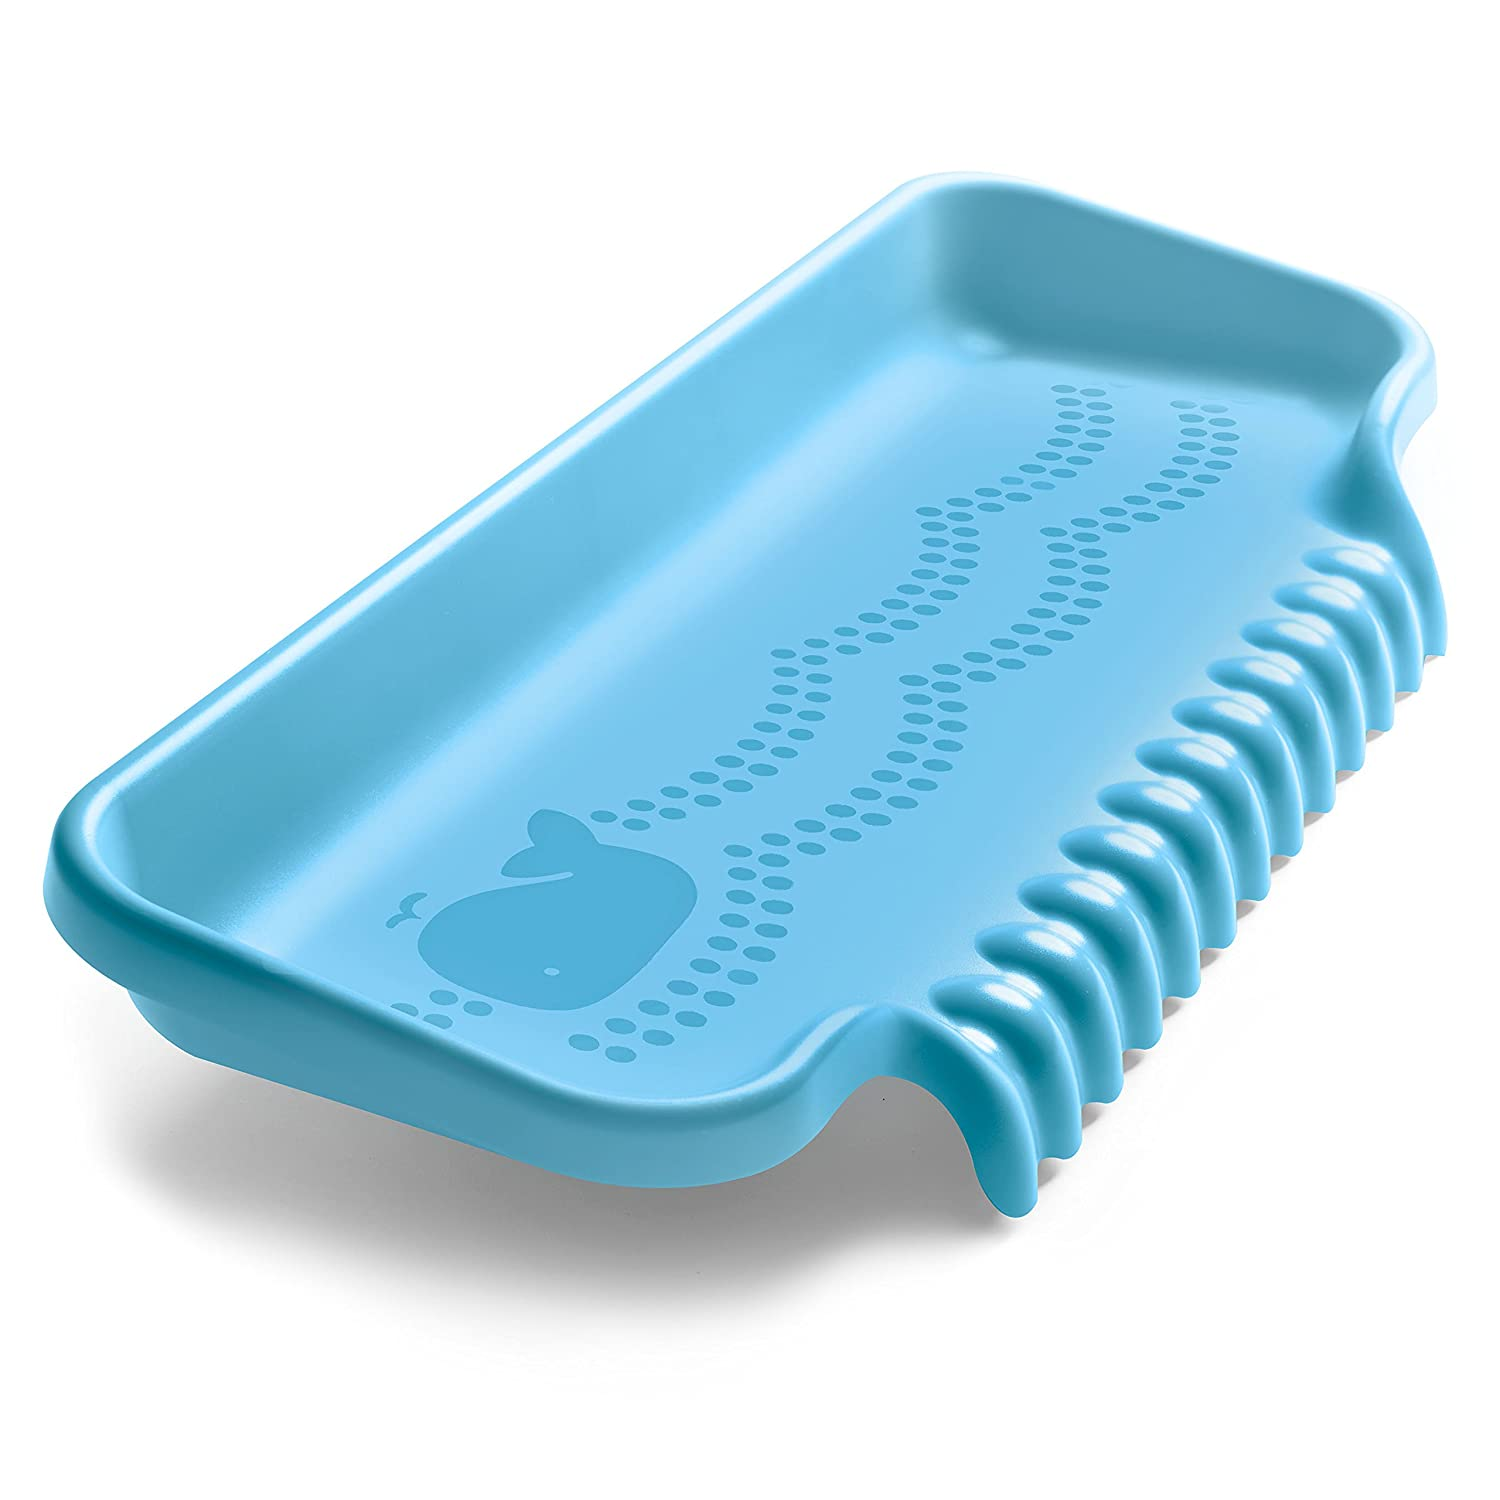 Amazon.com : Skip Hop Moby Shelfie Bathtub, Blue : Baby